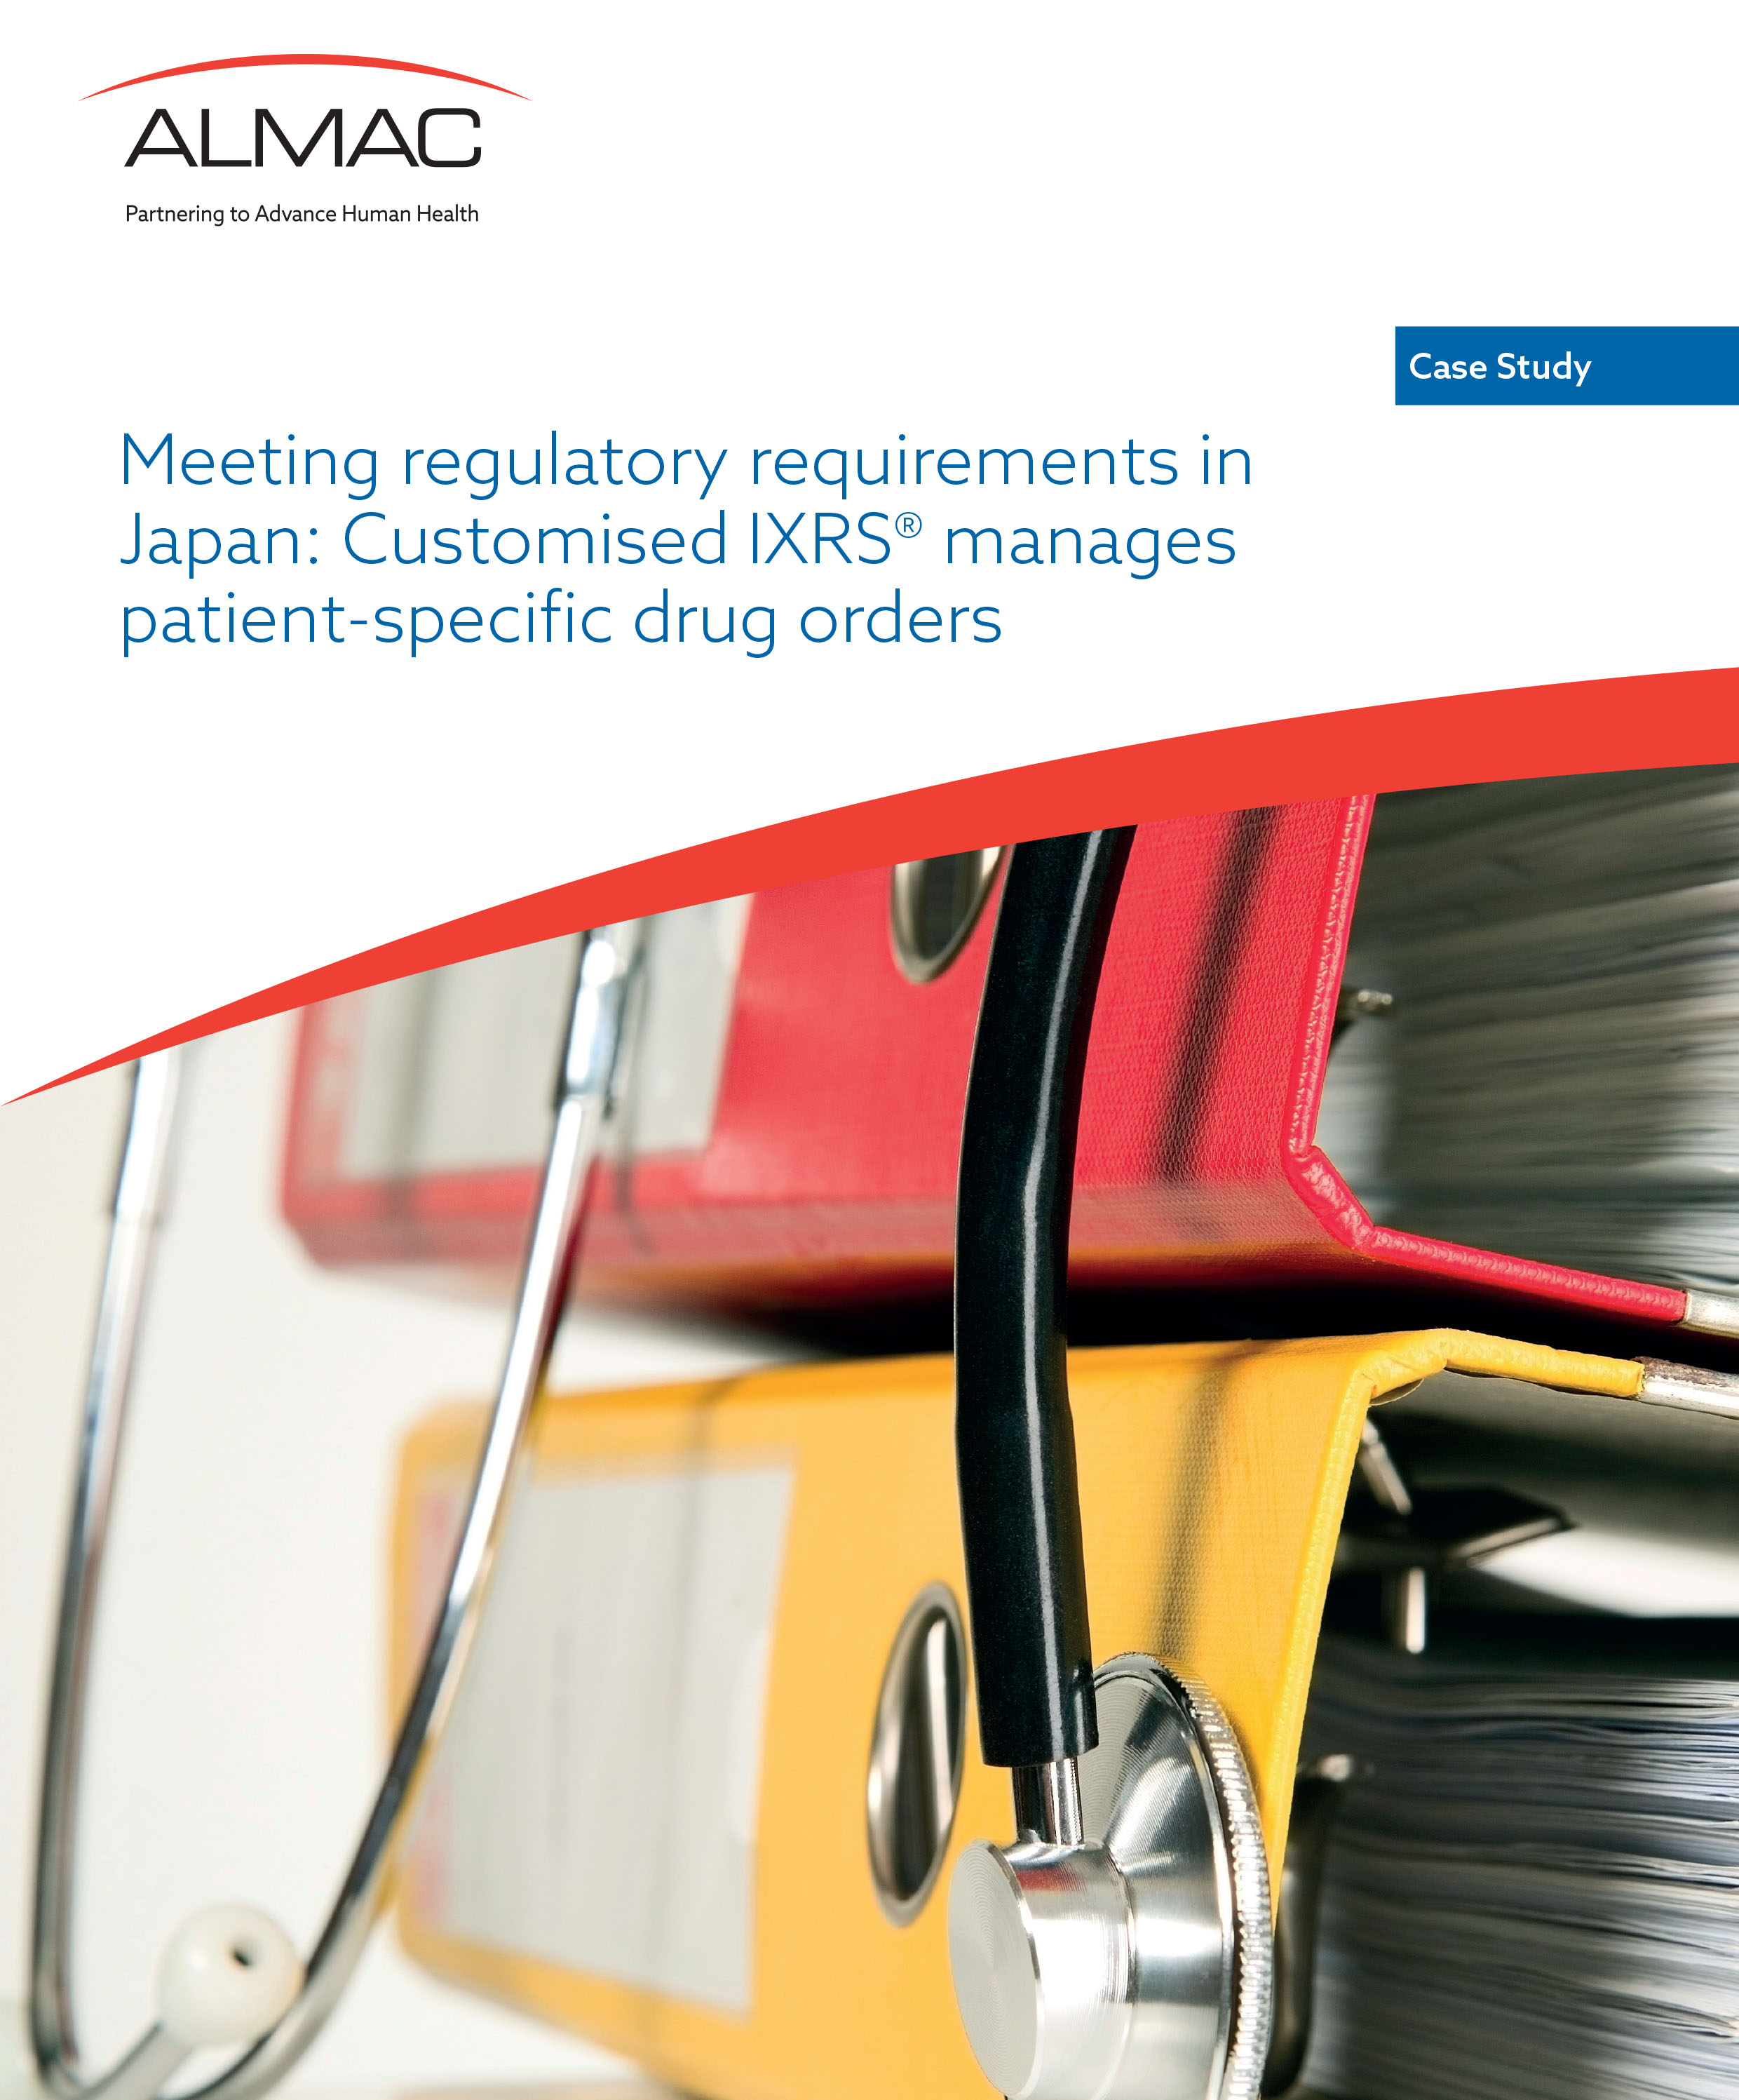 Meeting Regulatory Requirements In Japan: Customised IXRS® Manages Patient-Specific Drug Orders